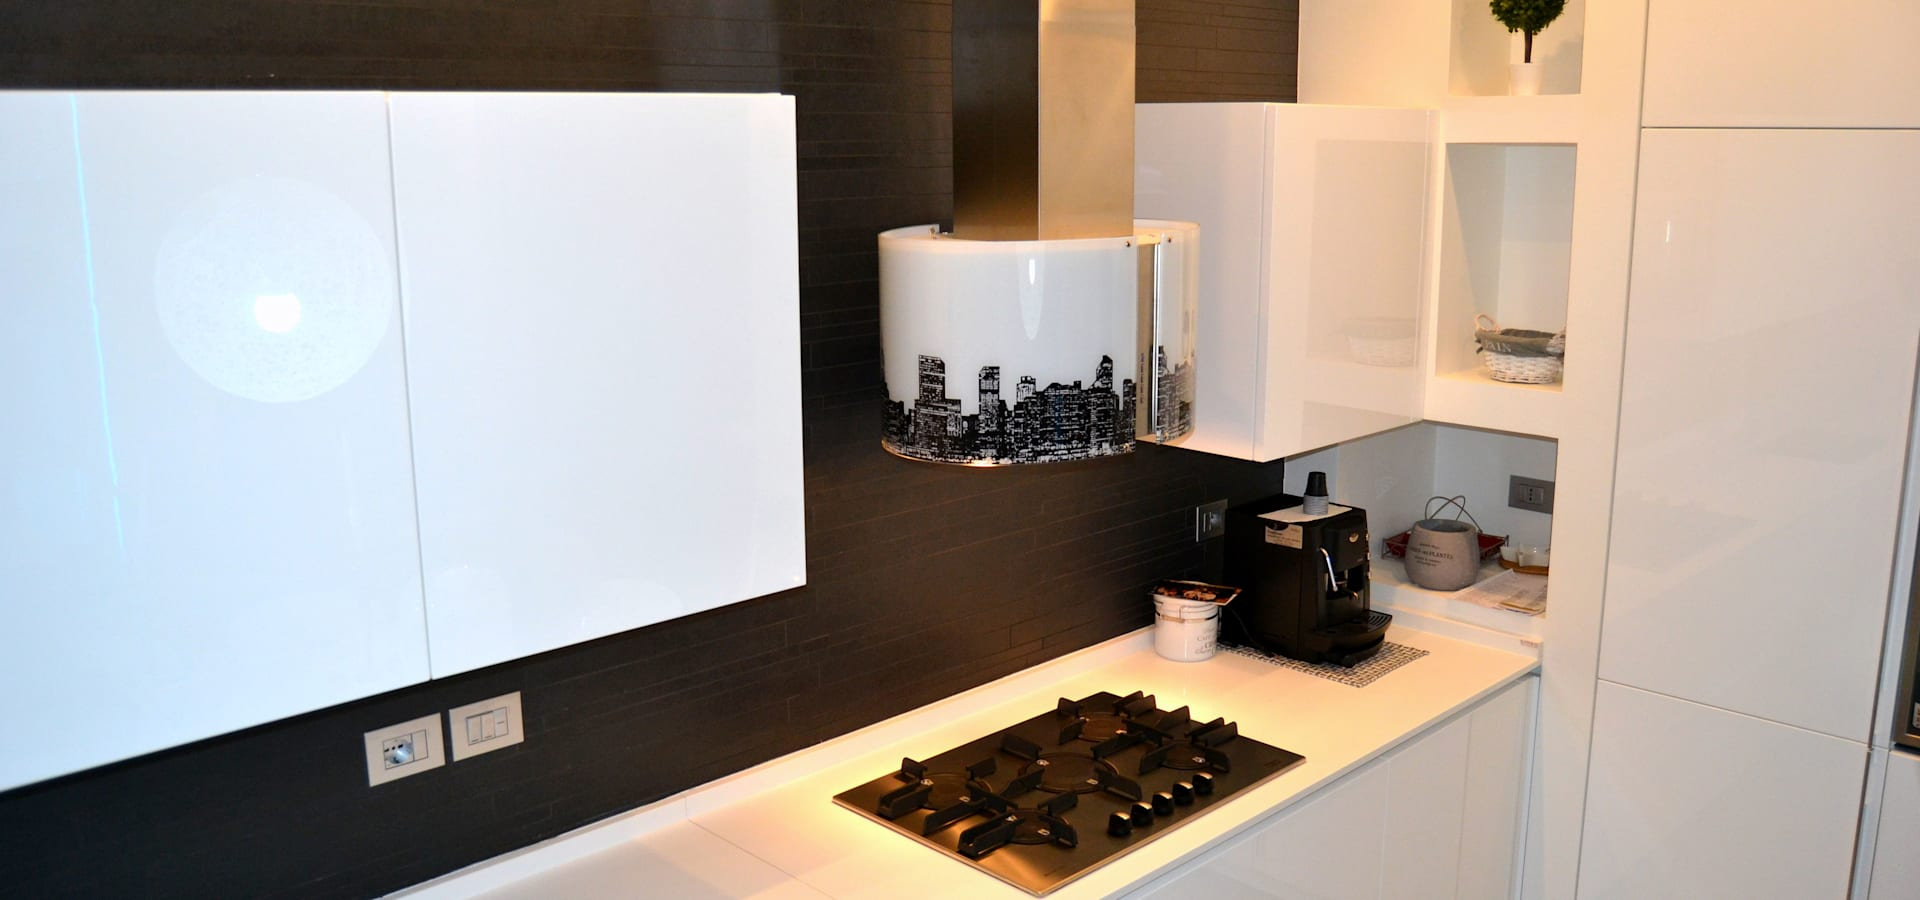 Beautiful Progettare Cucina Ikea Online Pictures - Design & Ideas ...